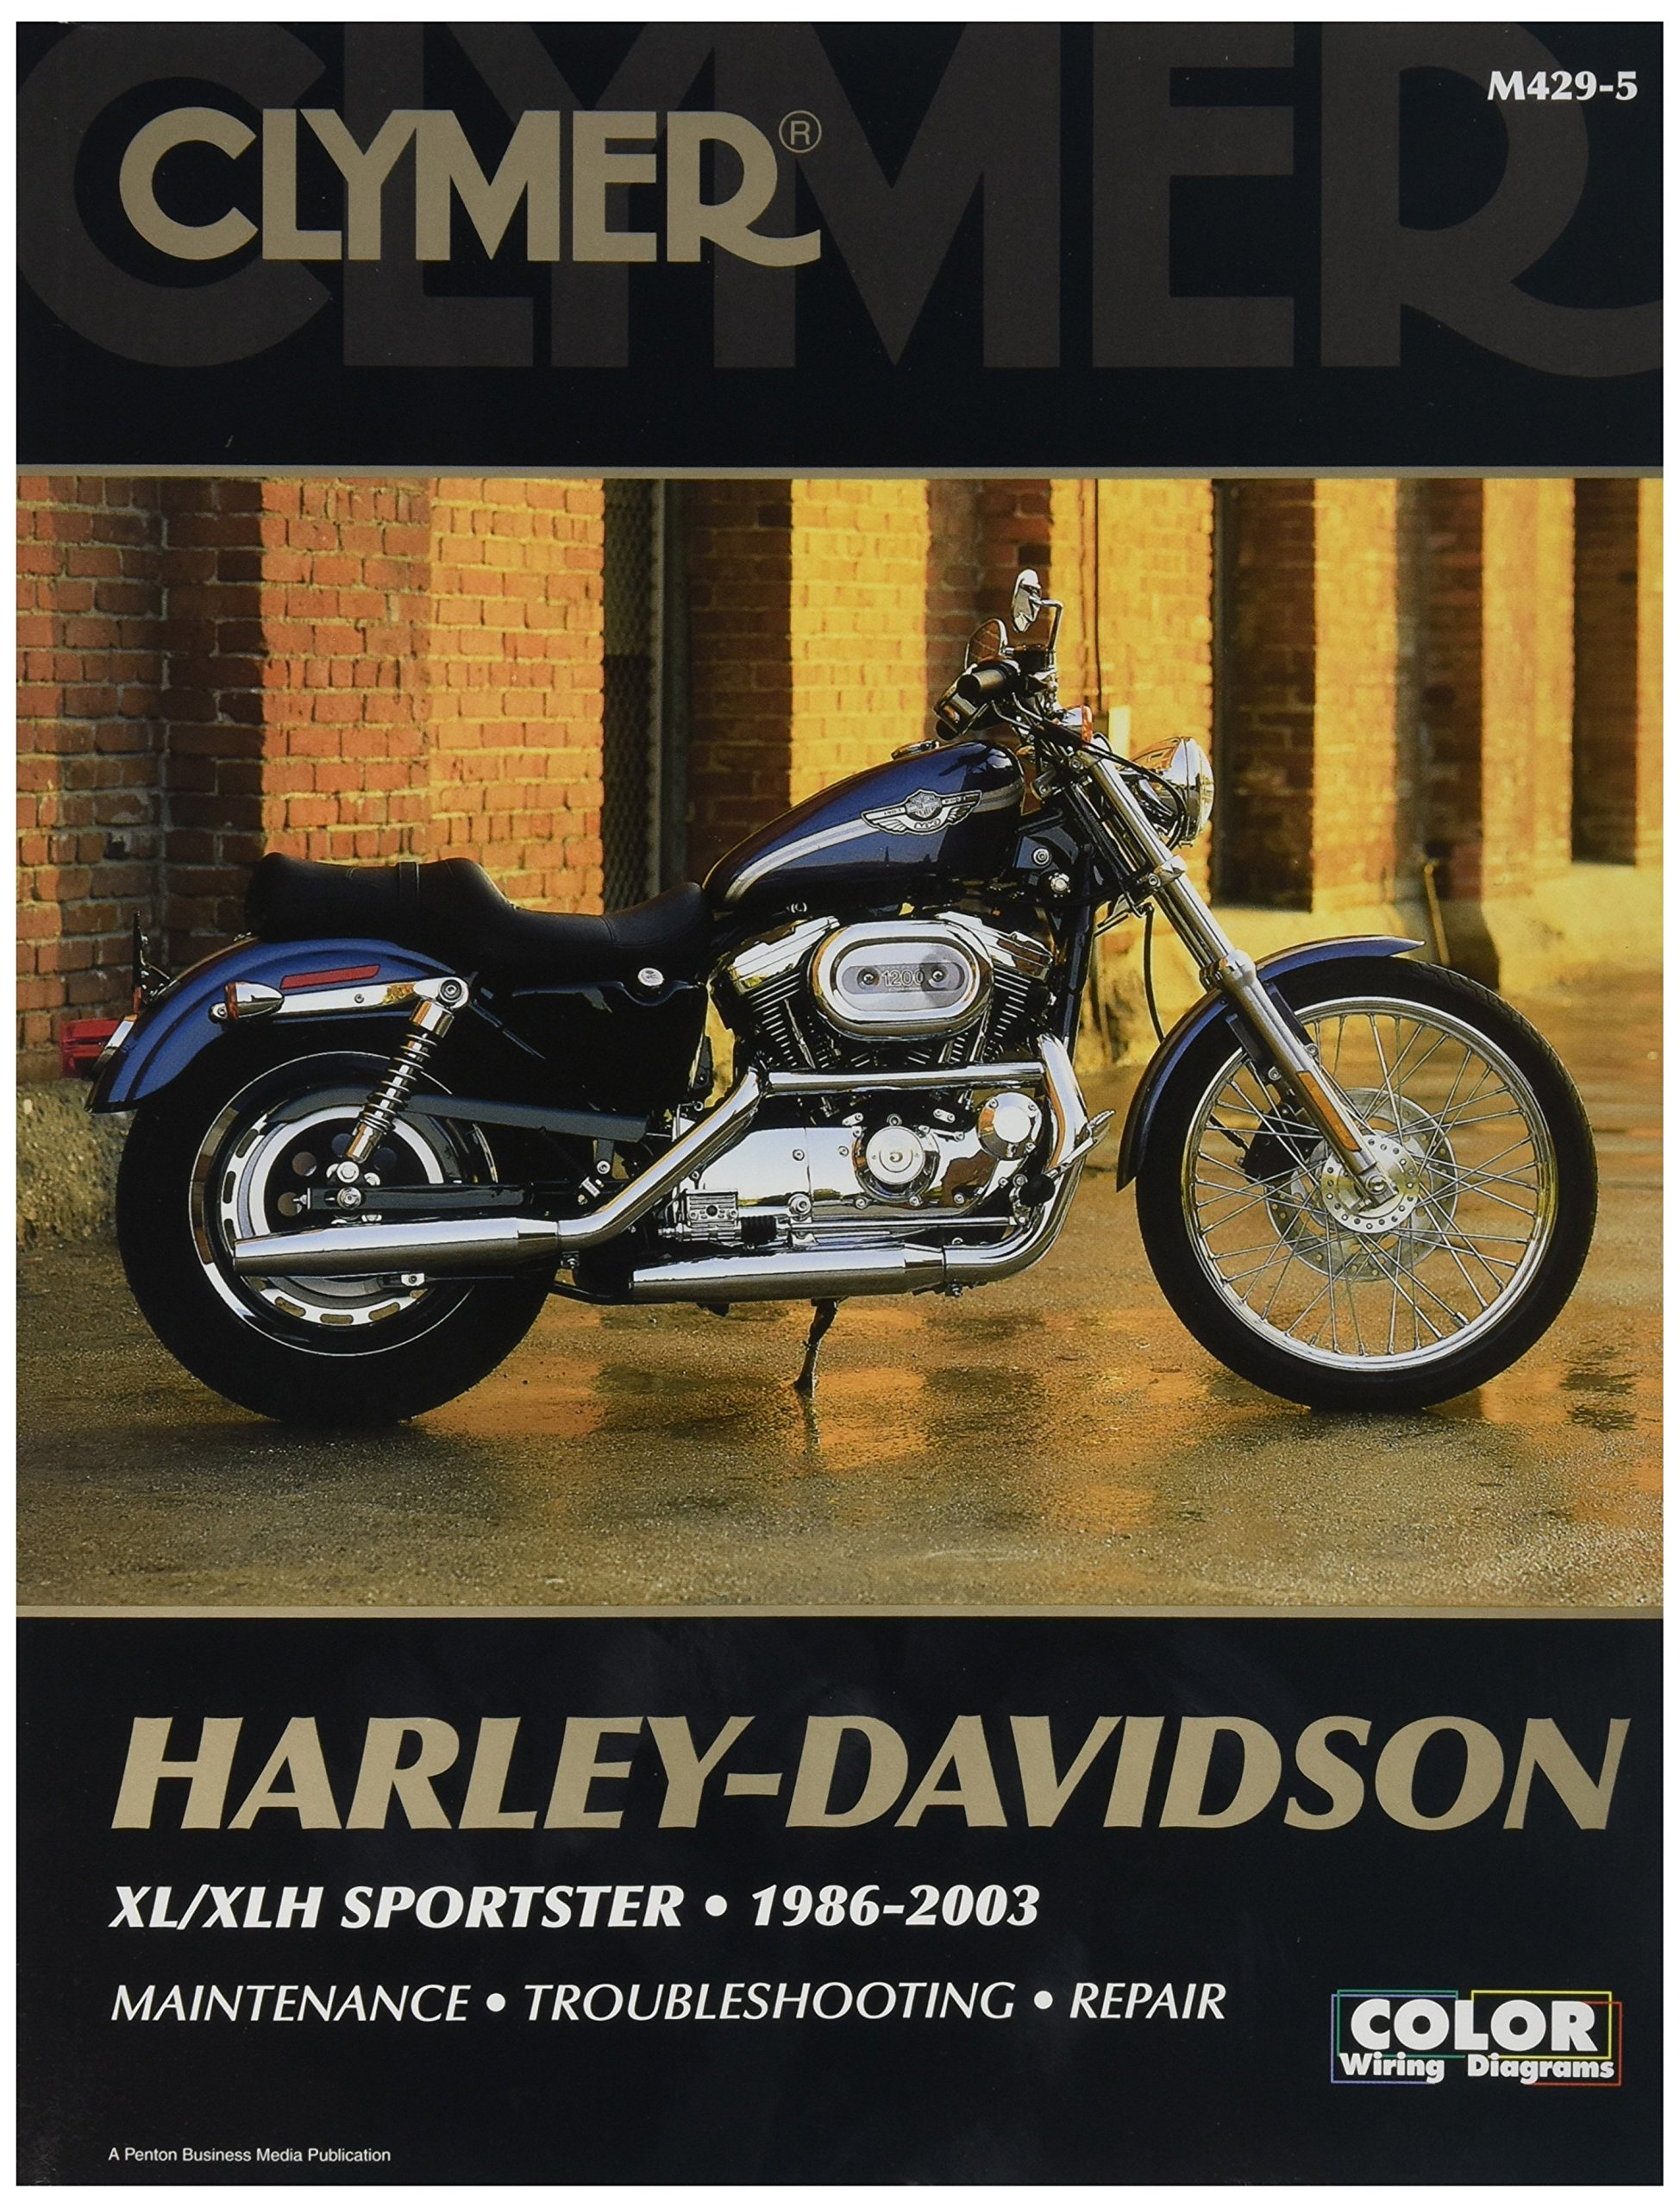 Cheap Sportster Custom Parts Find Deals On 2012 Harley Road Glide Wiring Diagram Get Quotations Clymer Davidson Xl 04 06 Manual M427 1